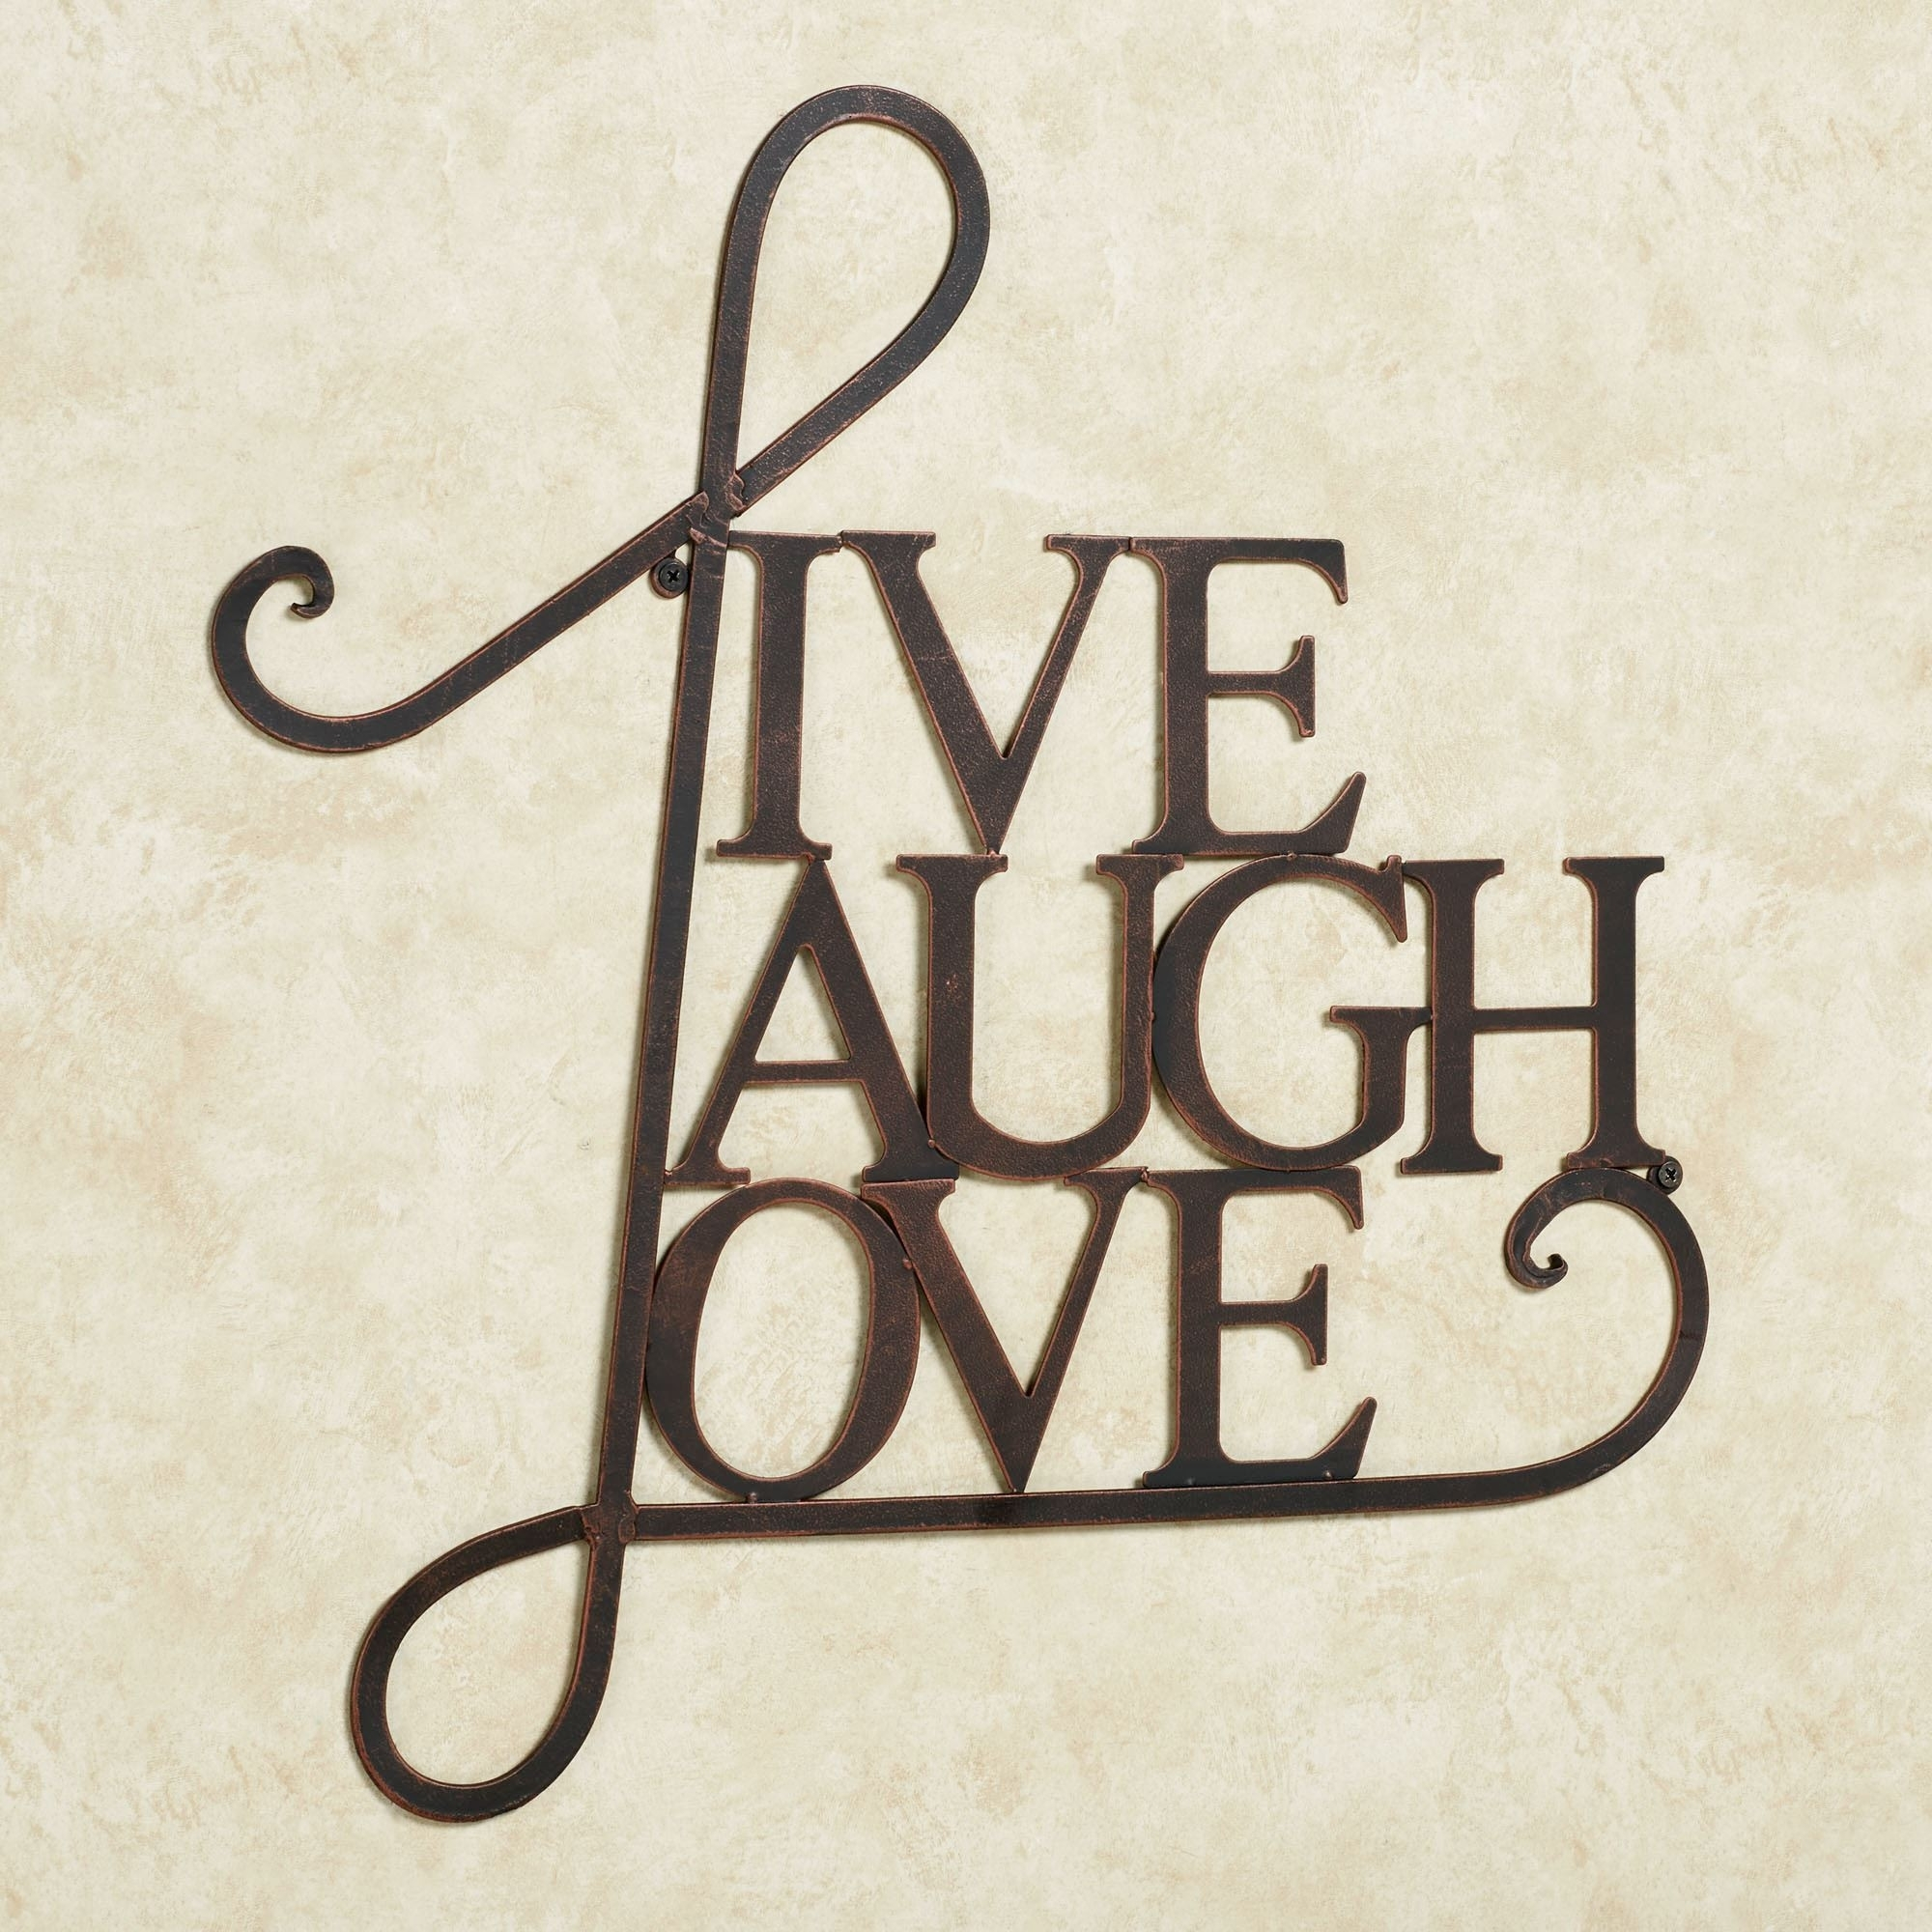 Live Laugh Love Metal Word Wall Art Fair | Bakerstreetbricolage For Most Recent Live Laugh Love Wall Art (Gallery 13 of 20)